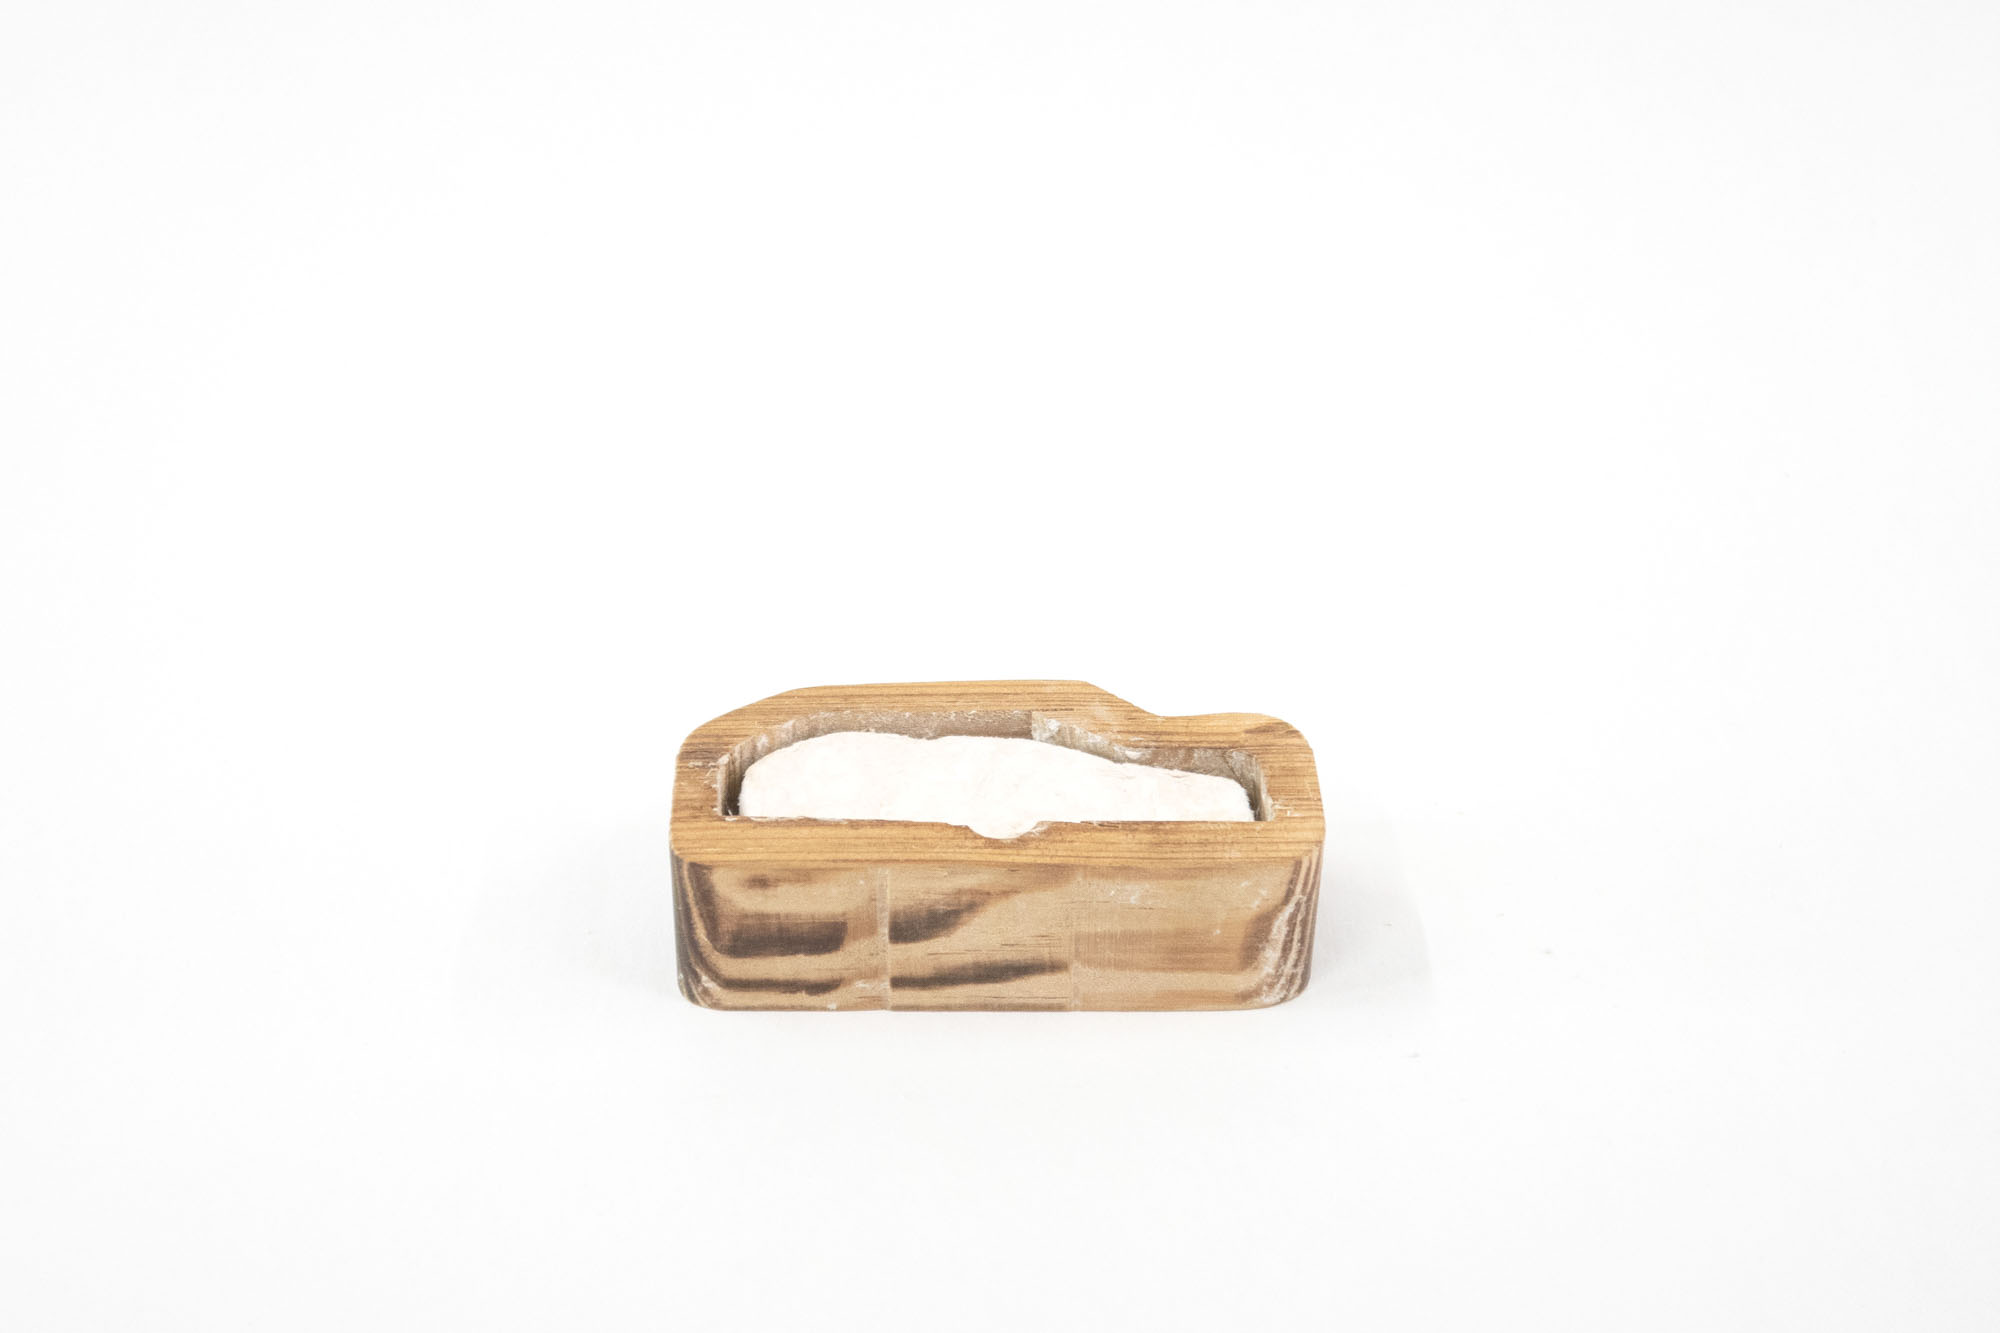 POOD forma in legno